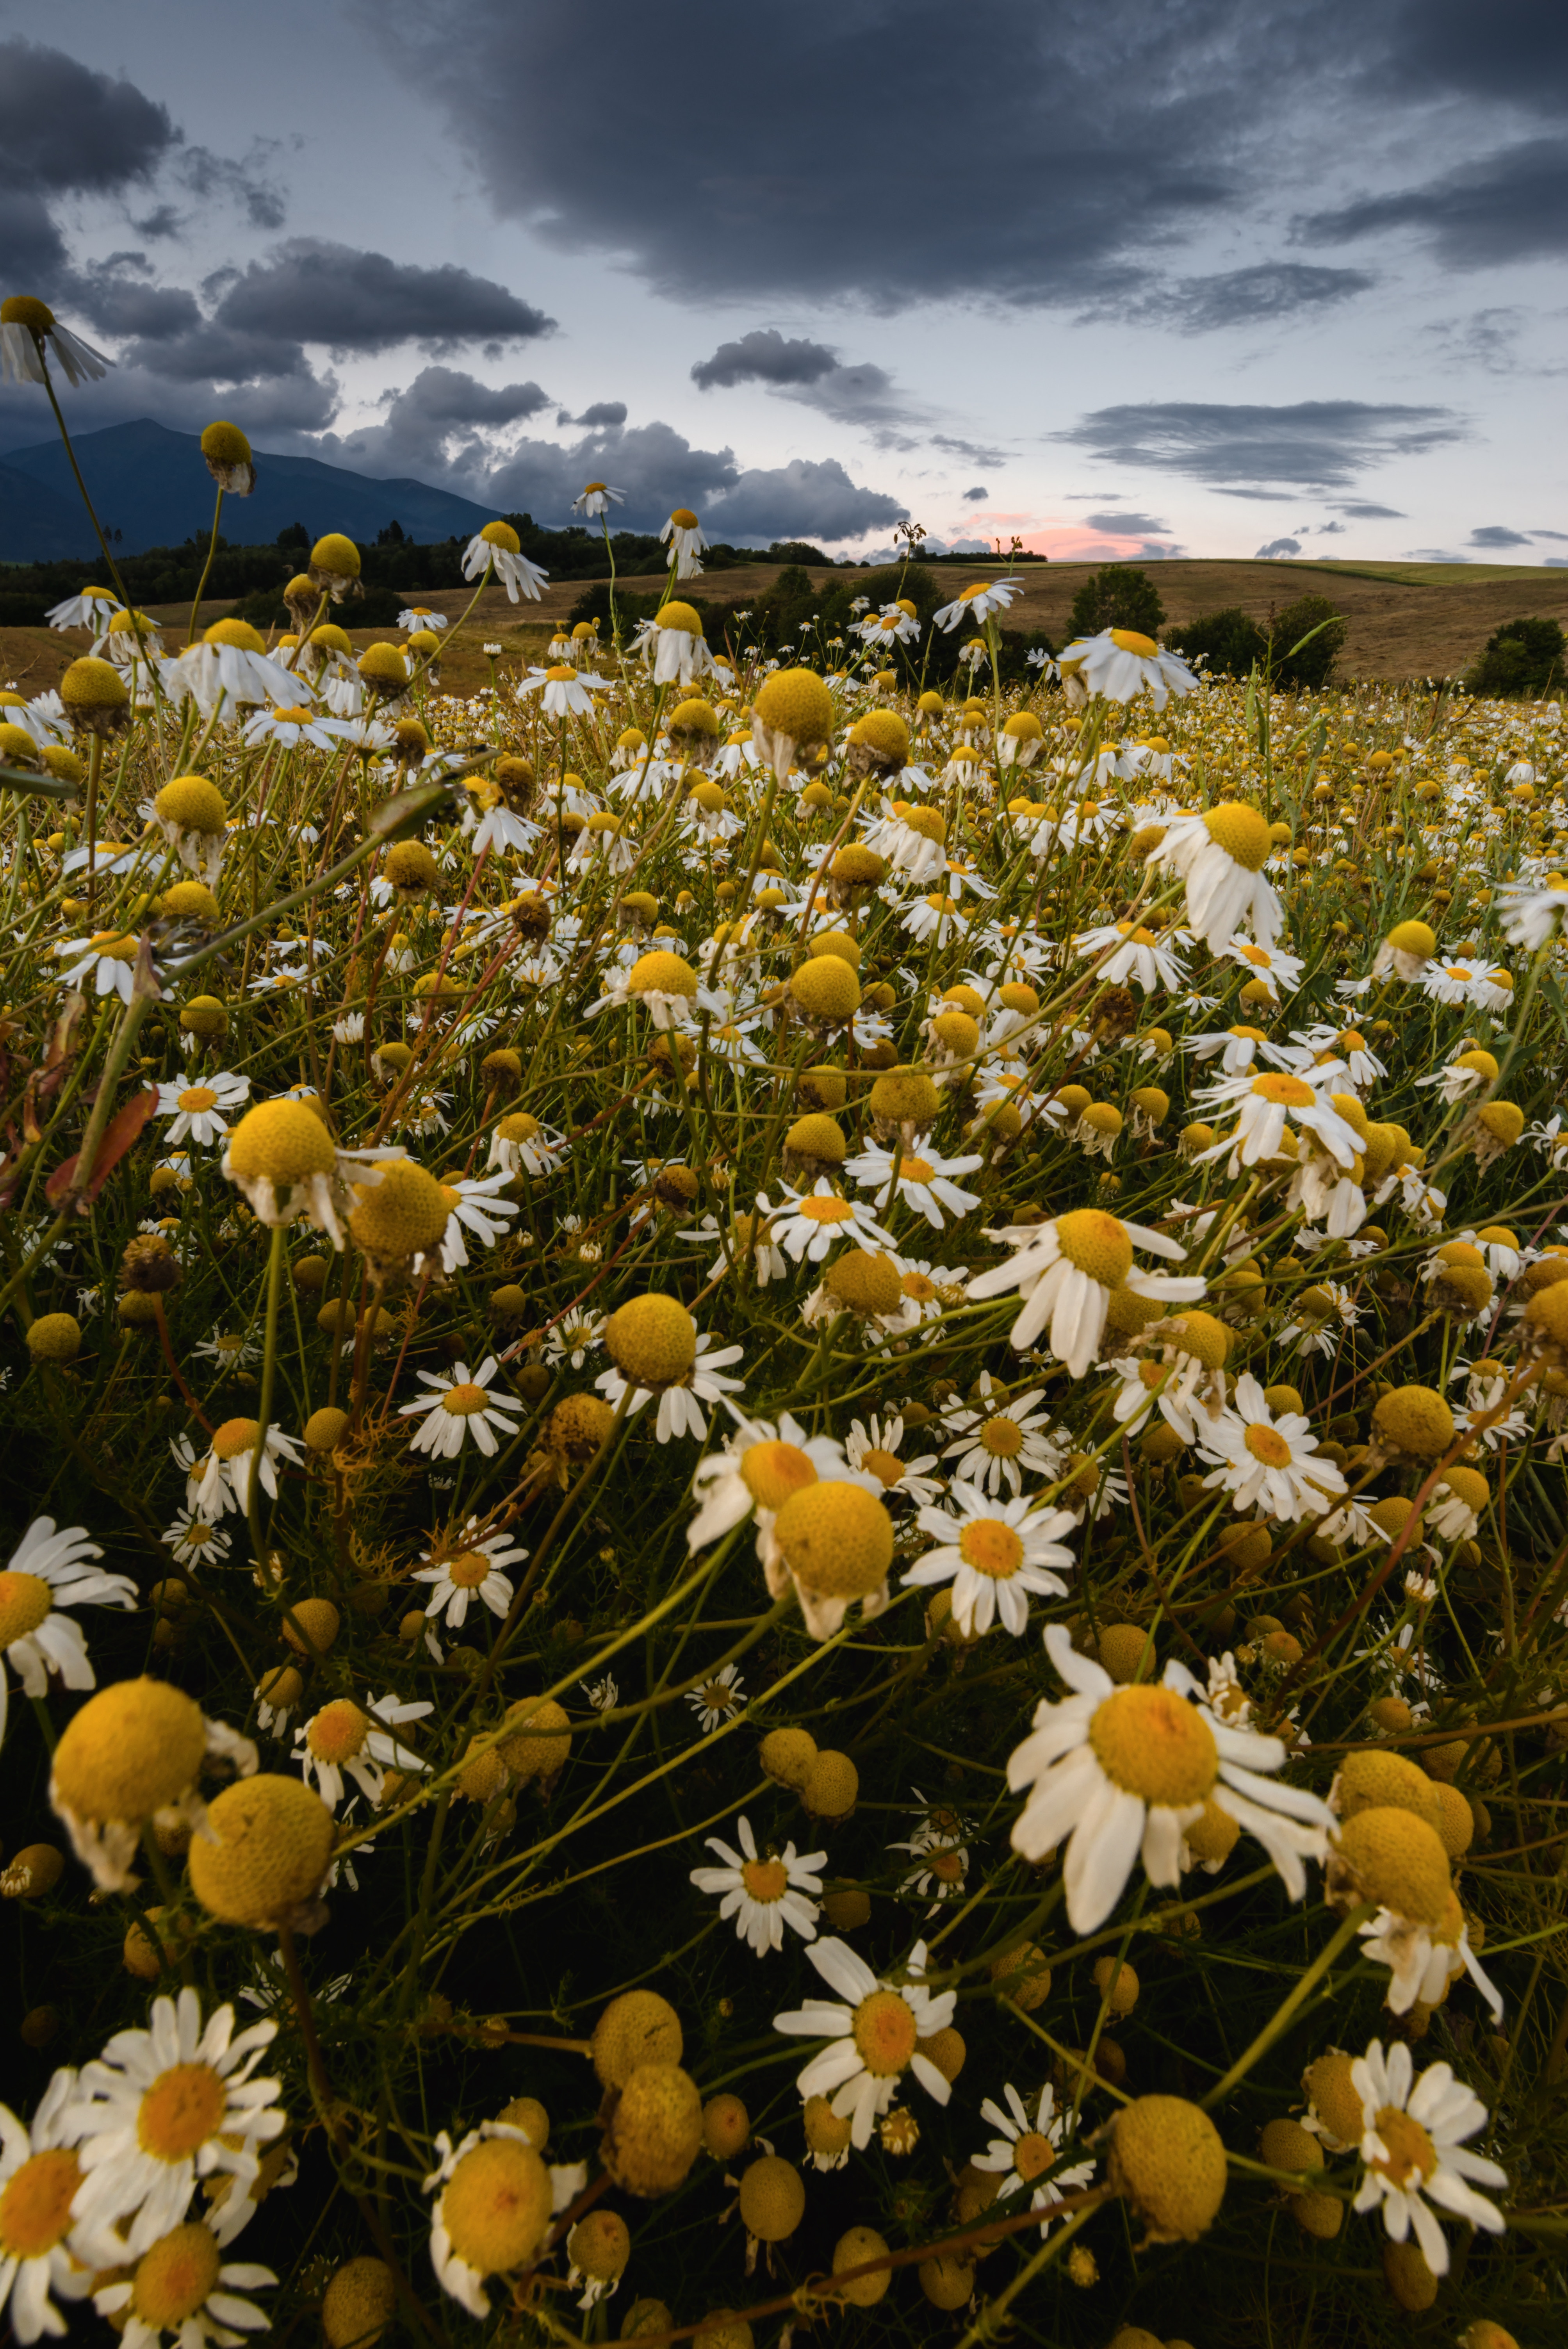 83612 download wallpaper Flowers, Camomile, Field, Mainly Cloudy, Overcast, Summer screensavers and pictures for free